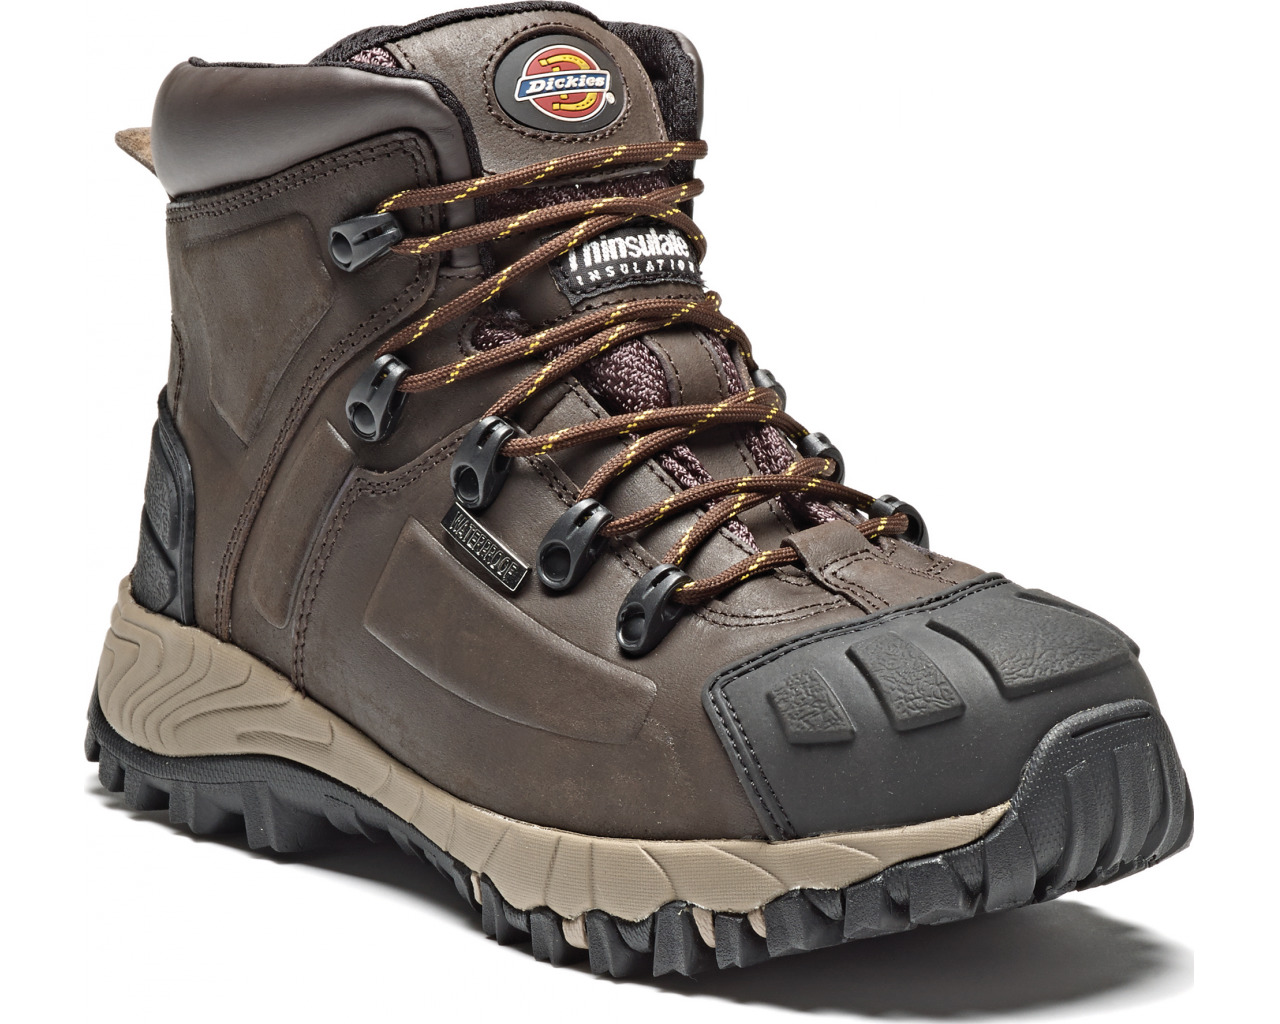 UK s 10 Best Work Boots in 2019  Most Comfortable Safety Boots Reviews aa9fffd913